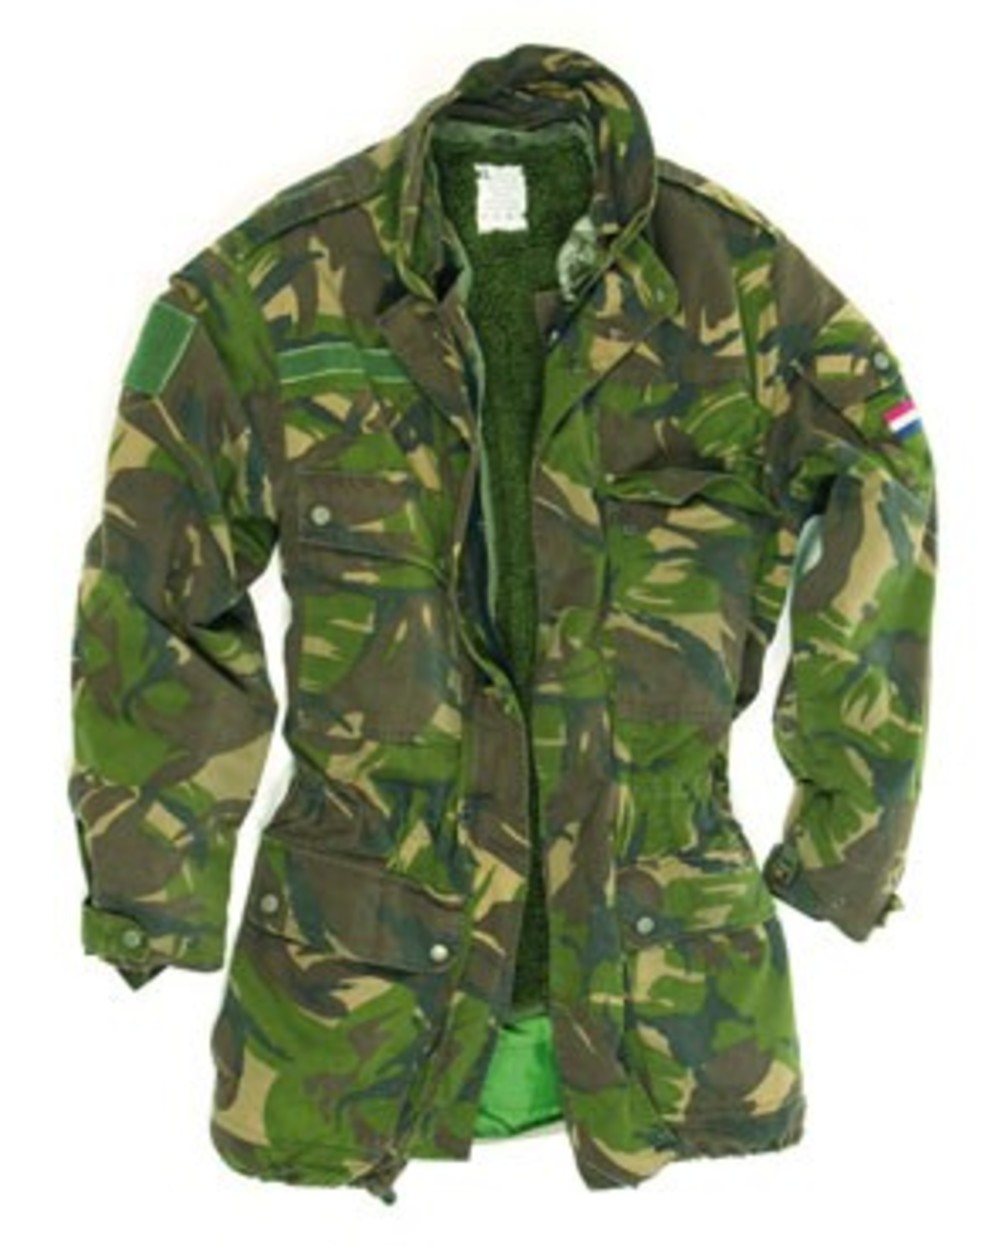 34f01a5f3 Dutch 3-in-1 DPM pile lined Camo Goretex Parka